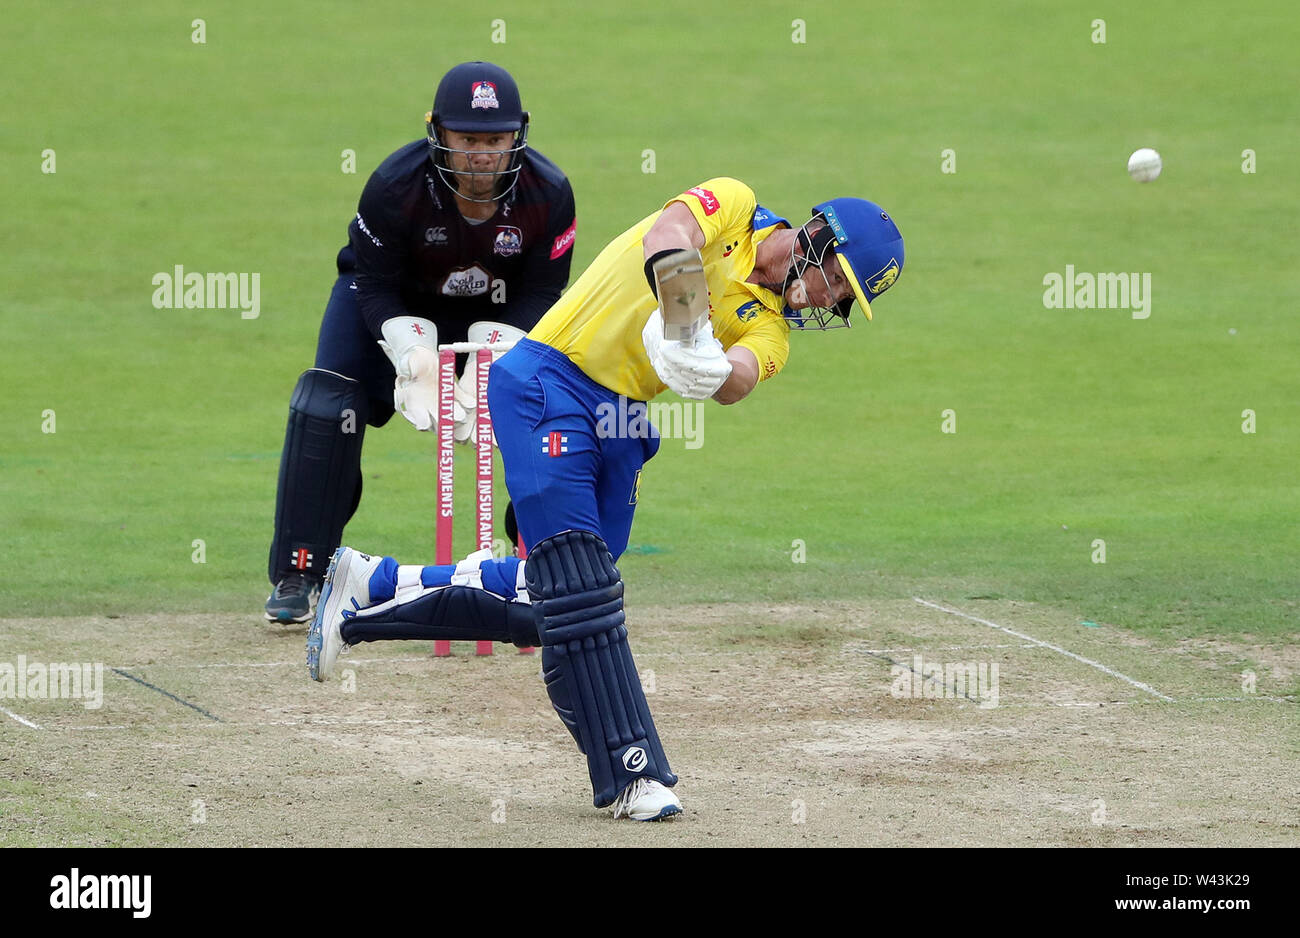 Durham's D'Arcy Short plays a shot bowled by Northamptonshire's Graeme White during the Vitality Blast T20 match at Emirates Riverside, Durham. - Stock Image